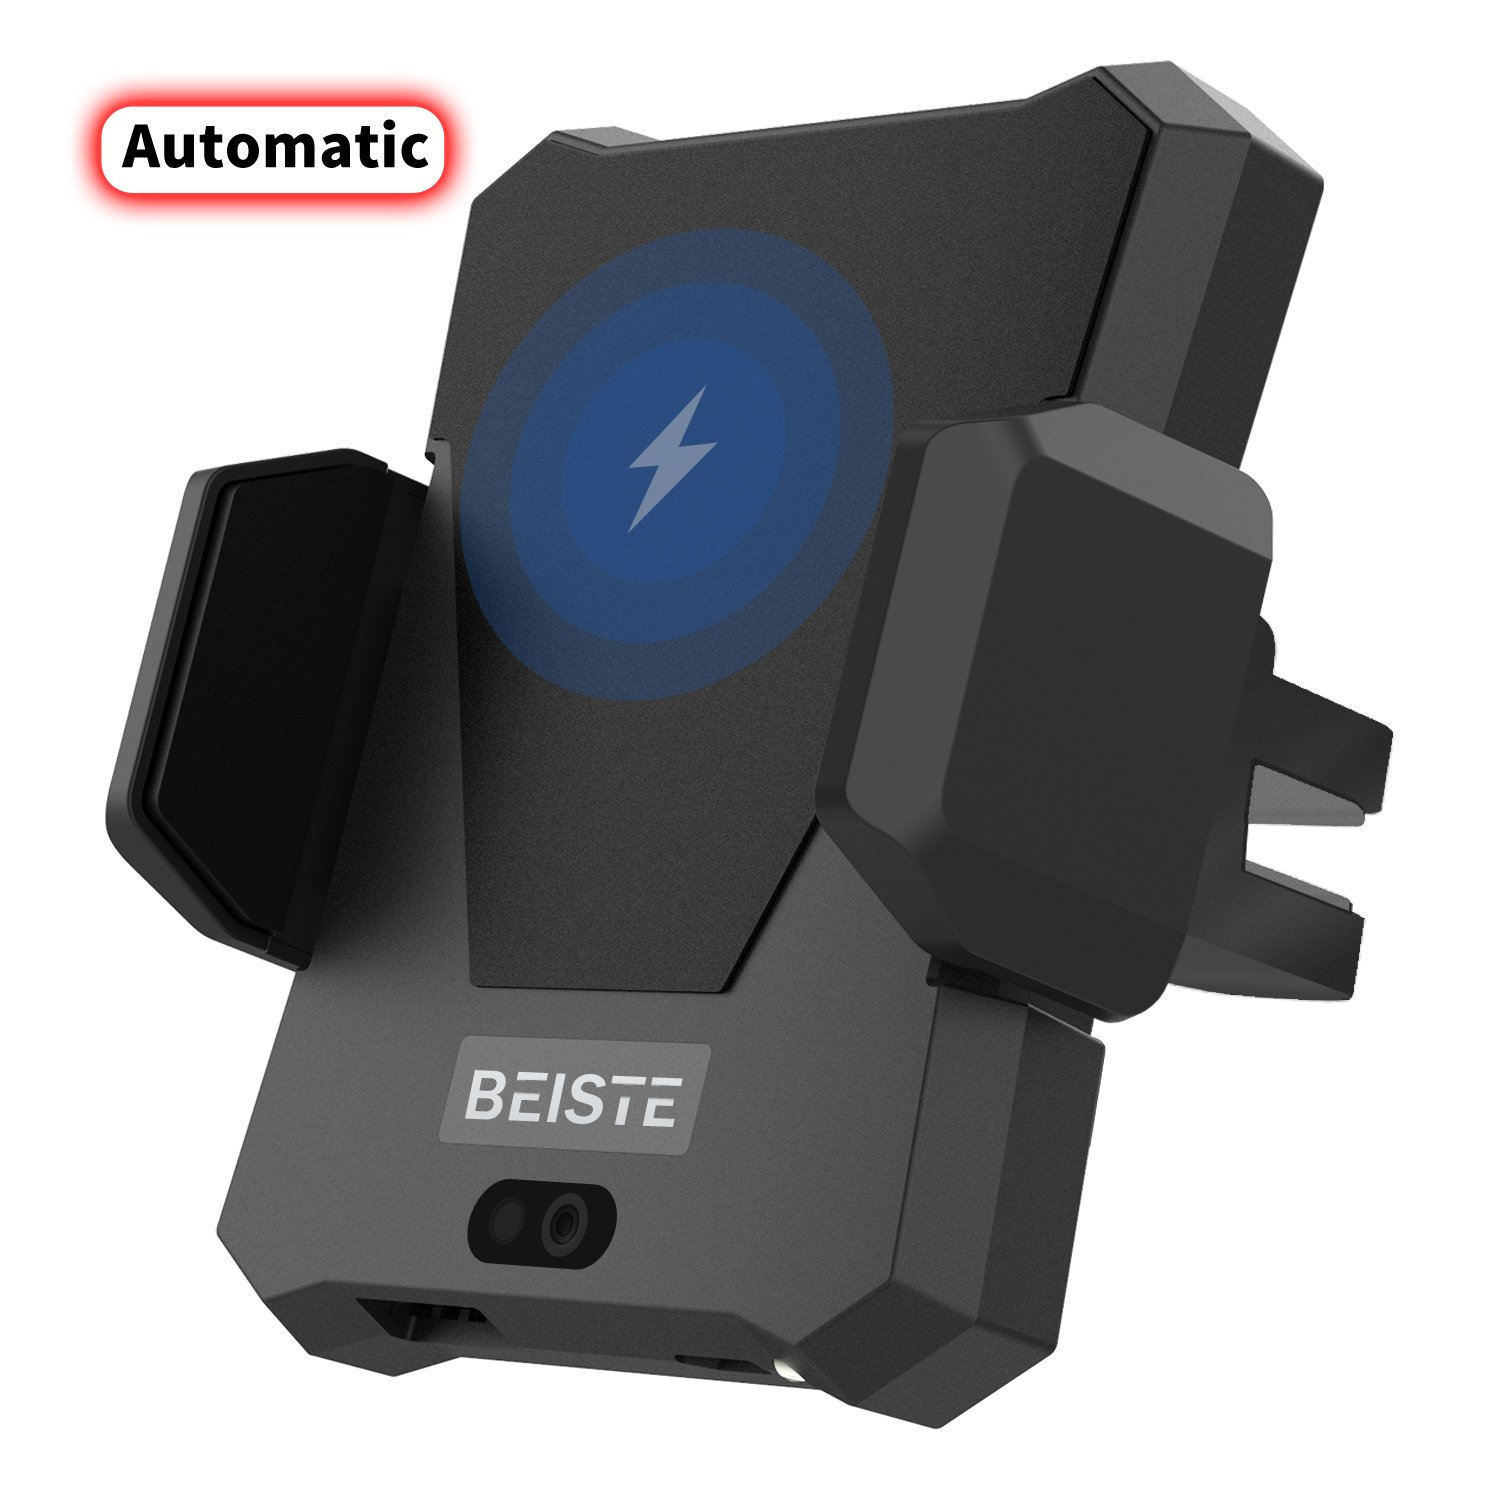 BEISTE Automatic Wireless Car Charger Air Vent Car Mount Phone Holder Cradle